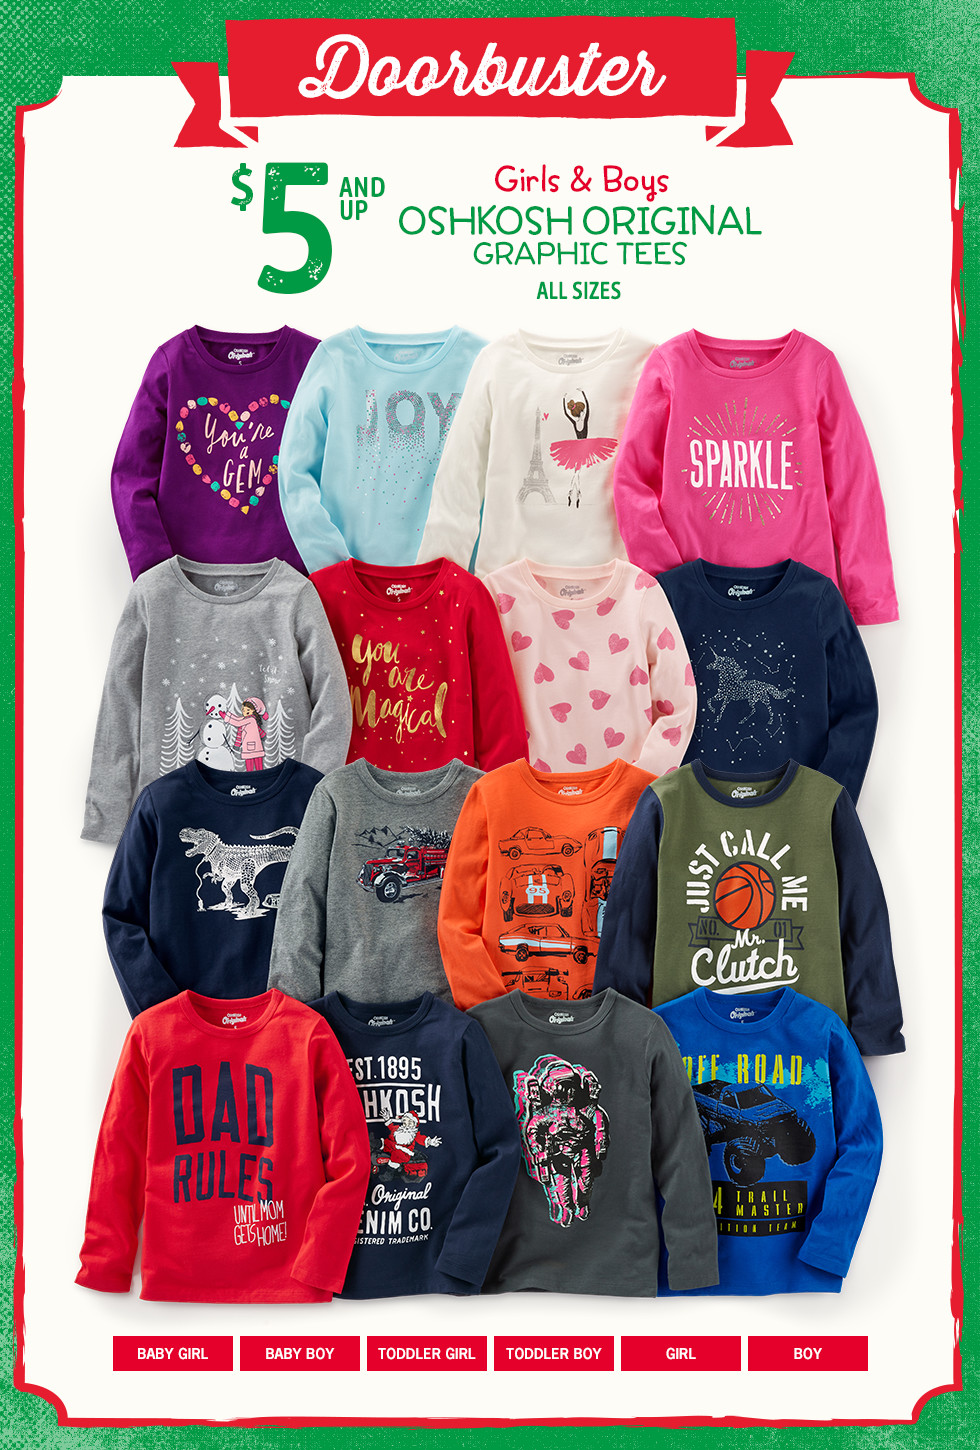 Doorbuster - $5 AND UP Girls and Boys OSHKOSH ORIGINAL GRAPHIC TEES, ALL SIZES.